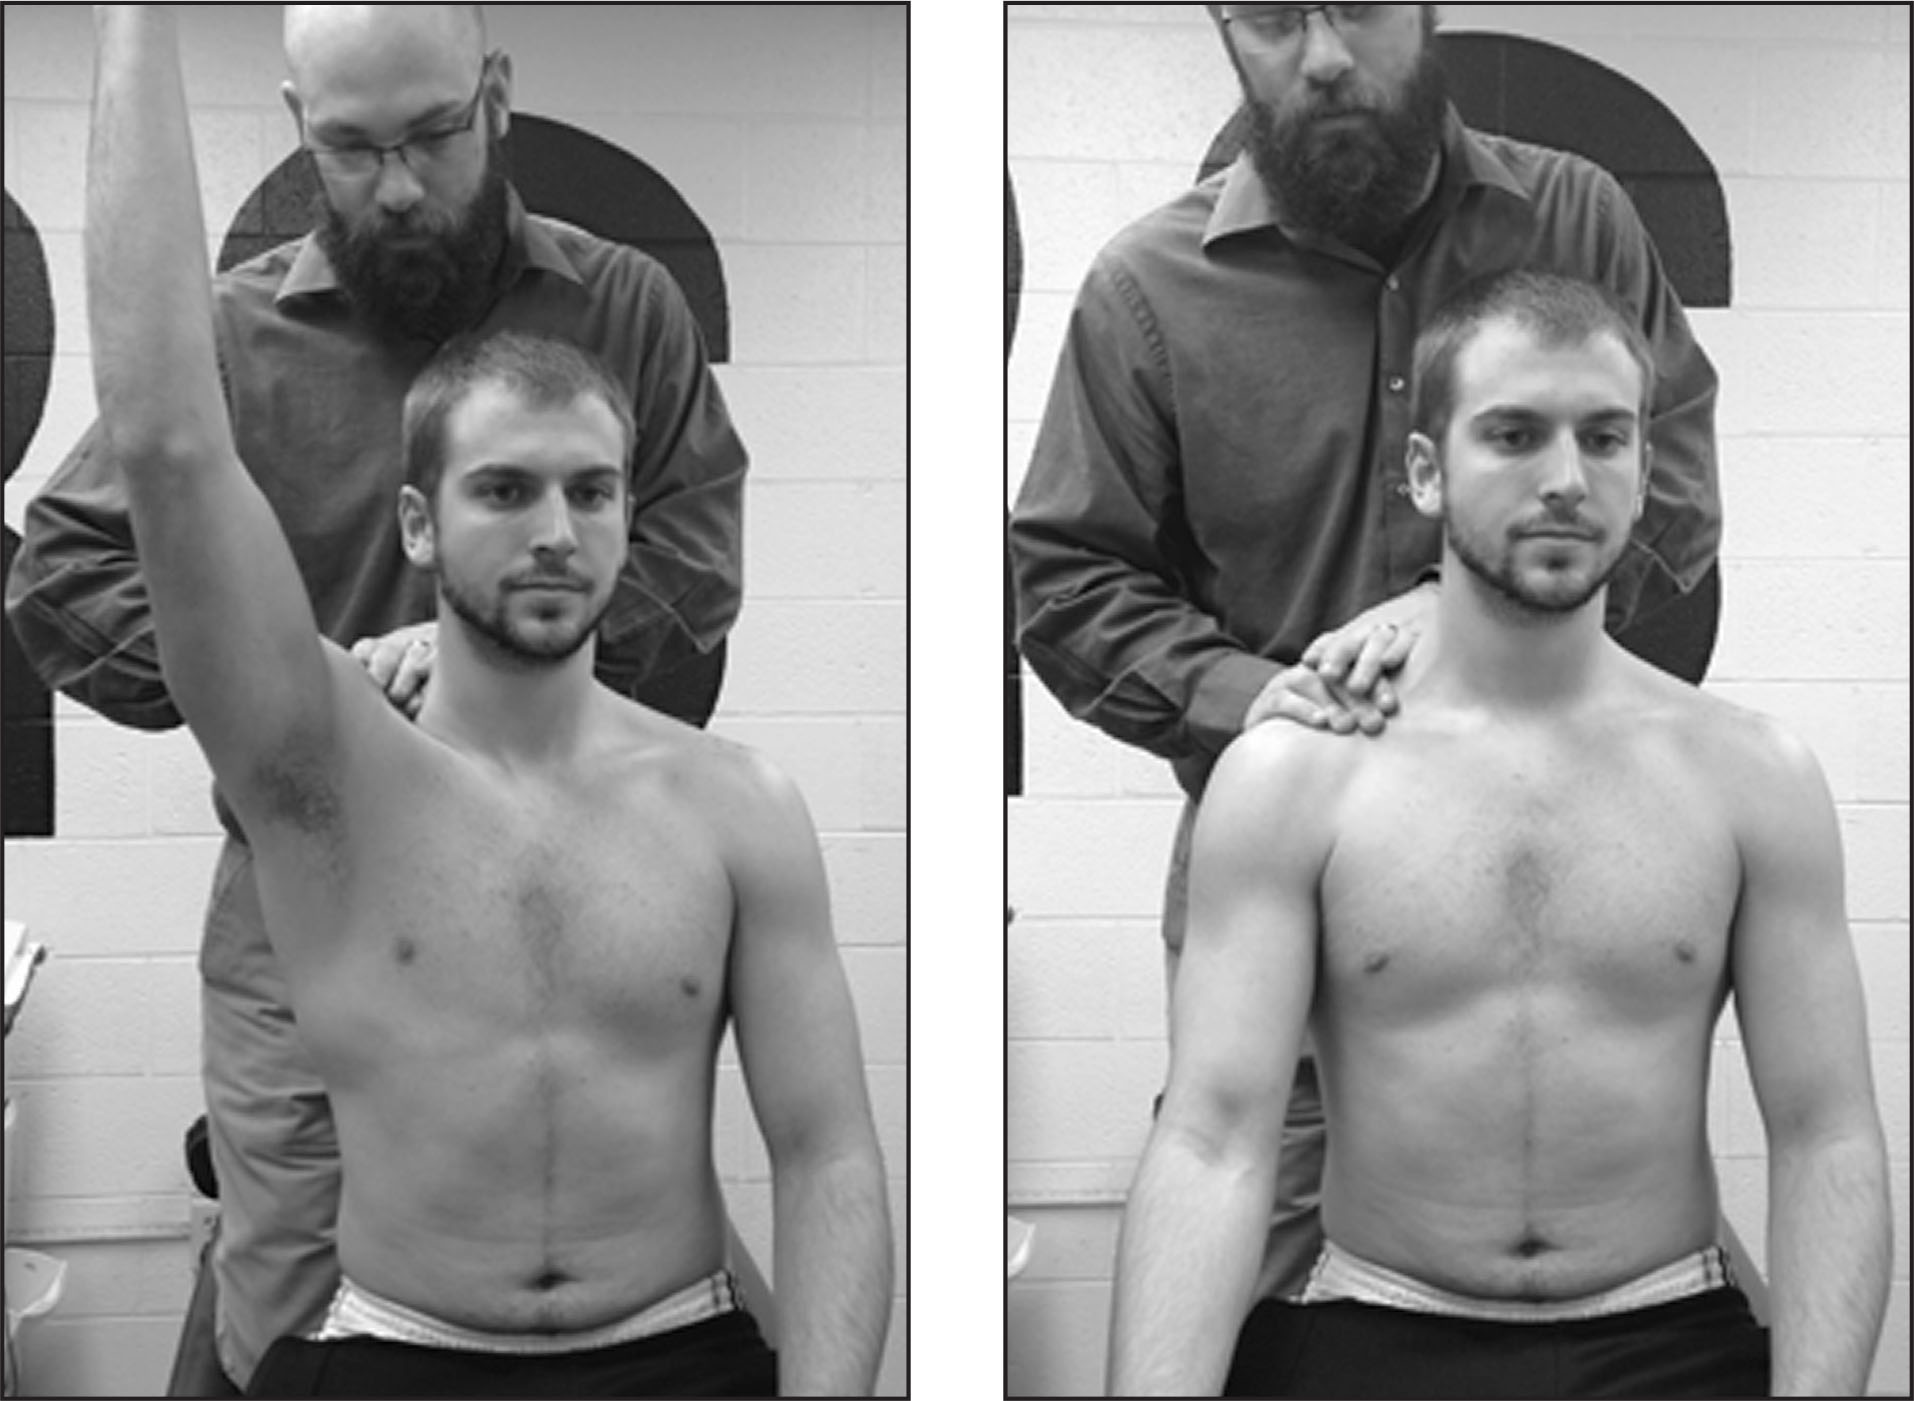 Hand placement for the mobilization with movement for the acromioclavicular glide with a forward flexion movement by the patient.